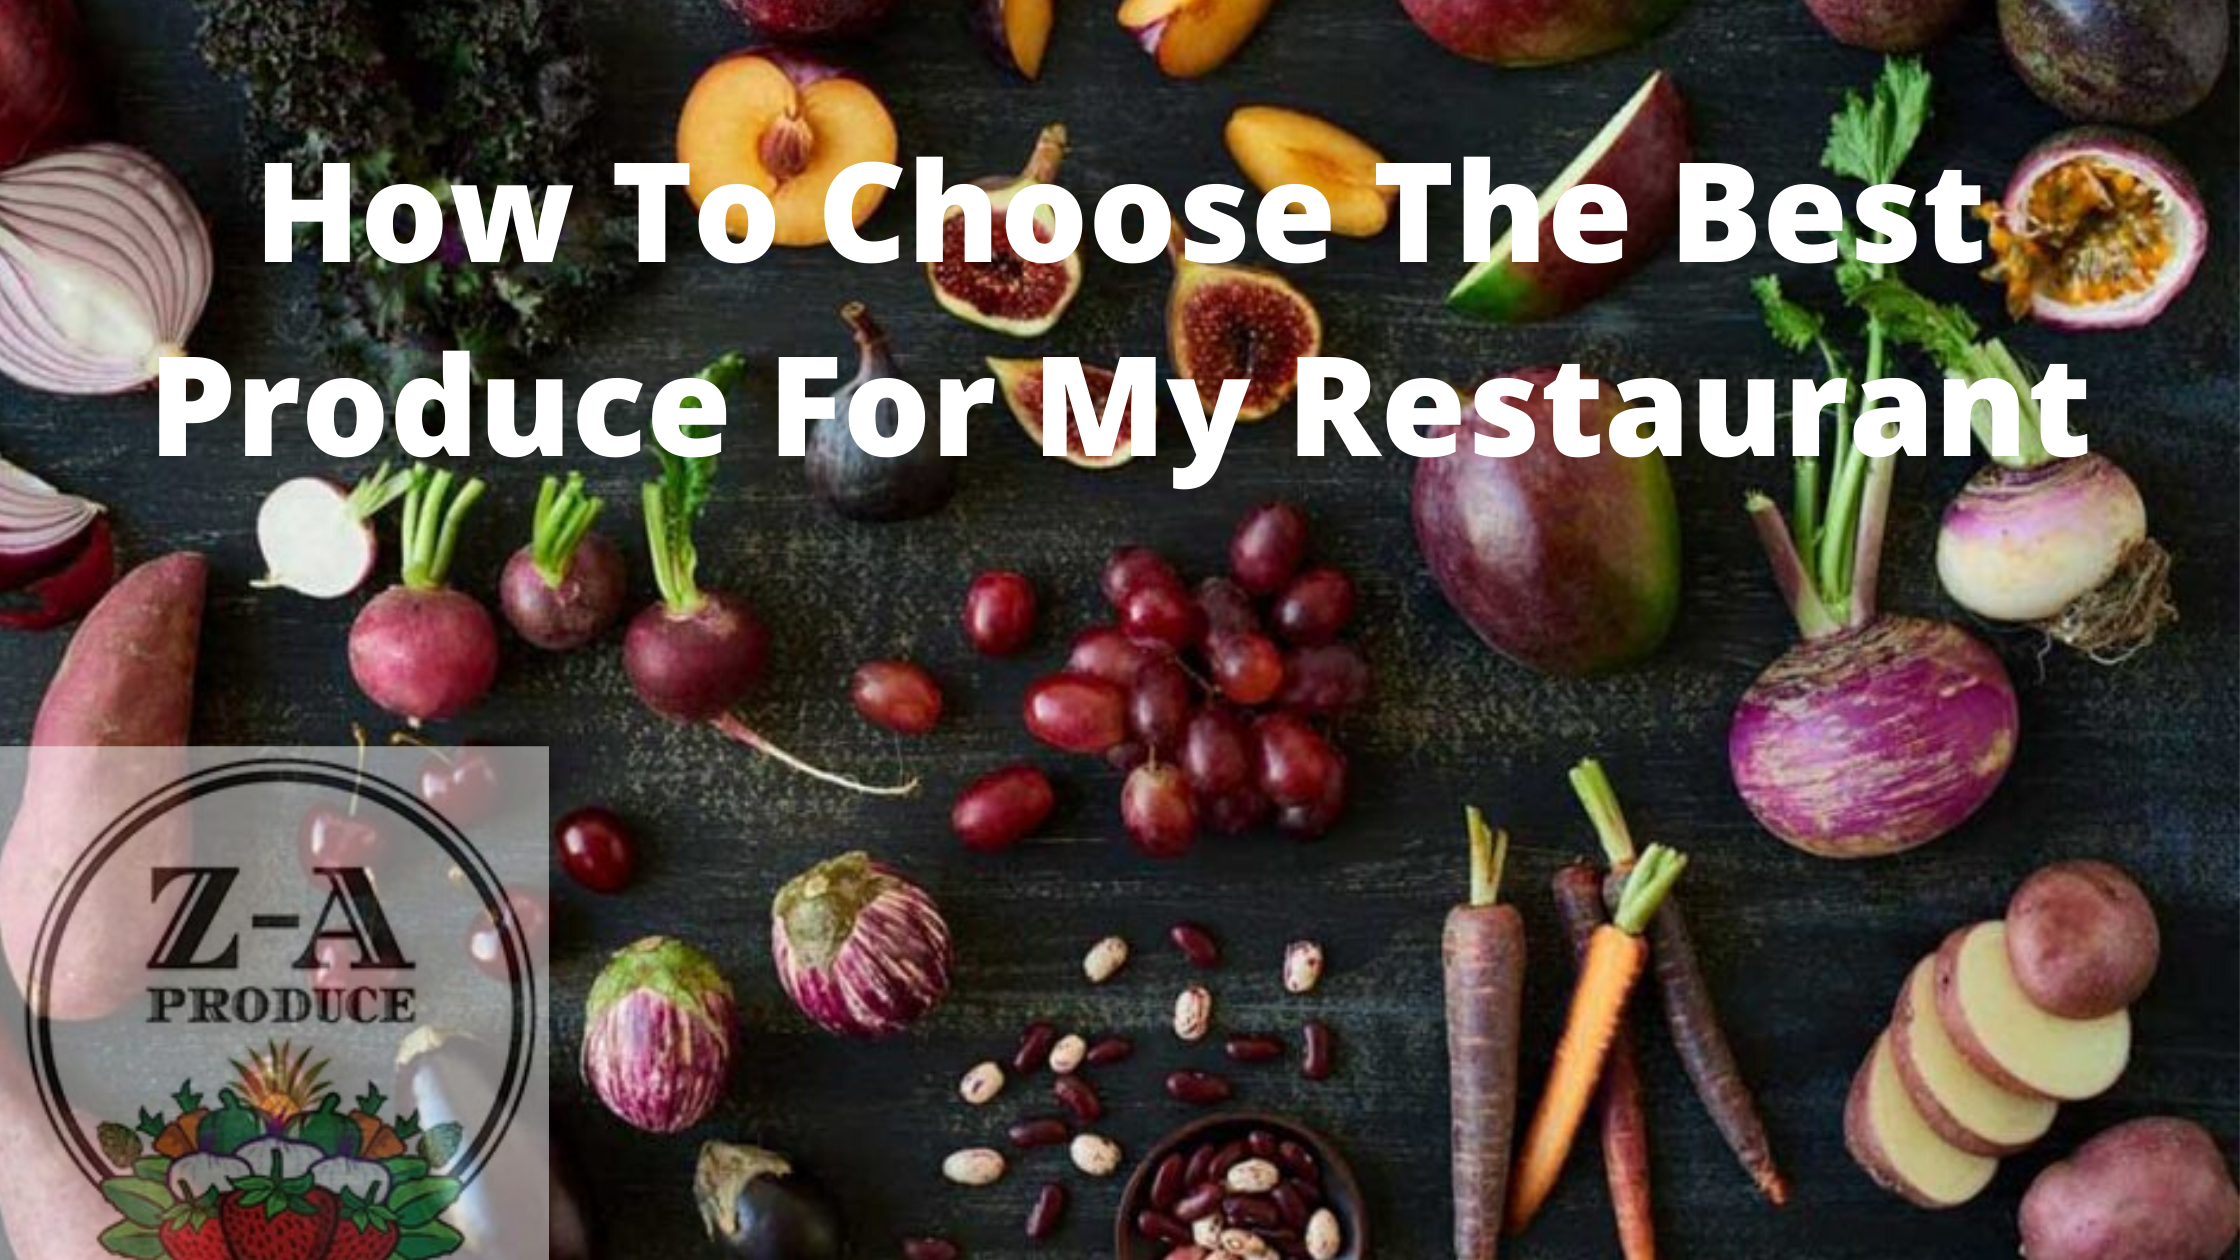 How To Choose The Best Produce For My Restaurant